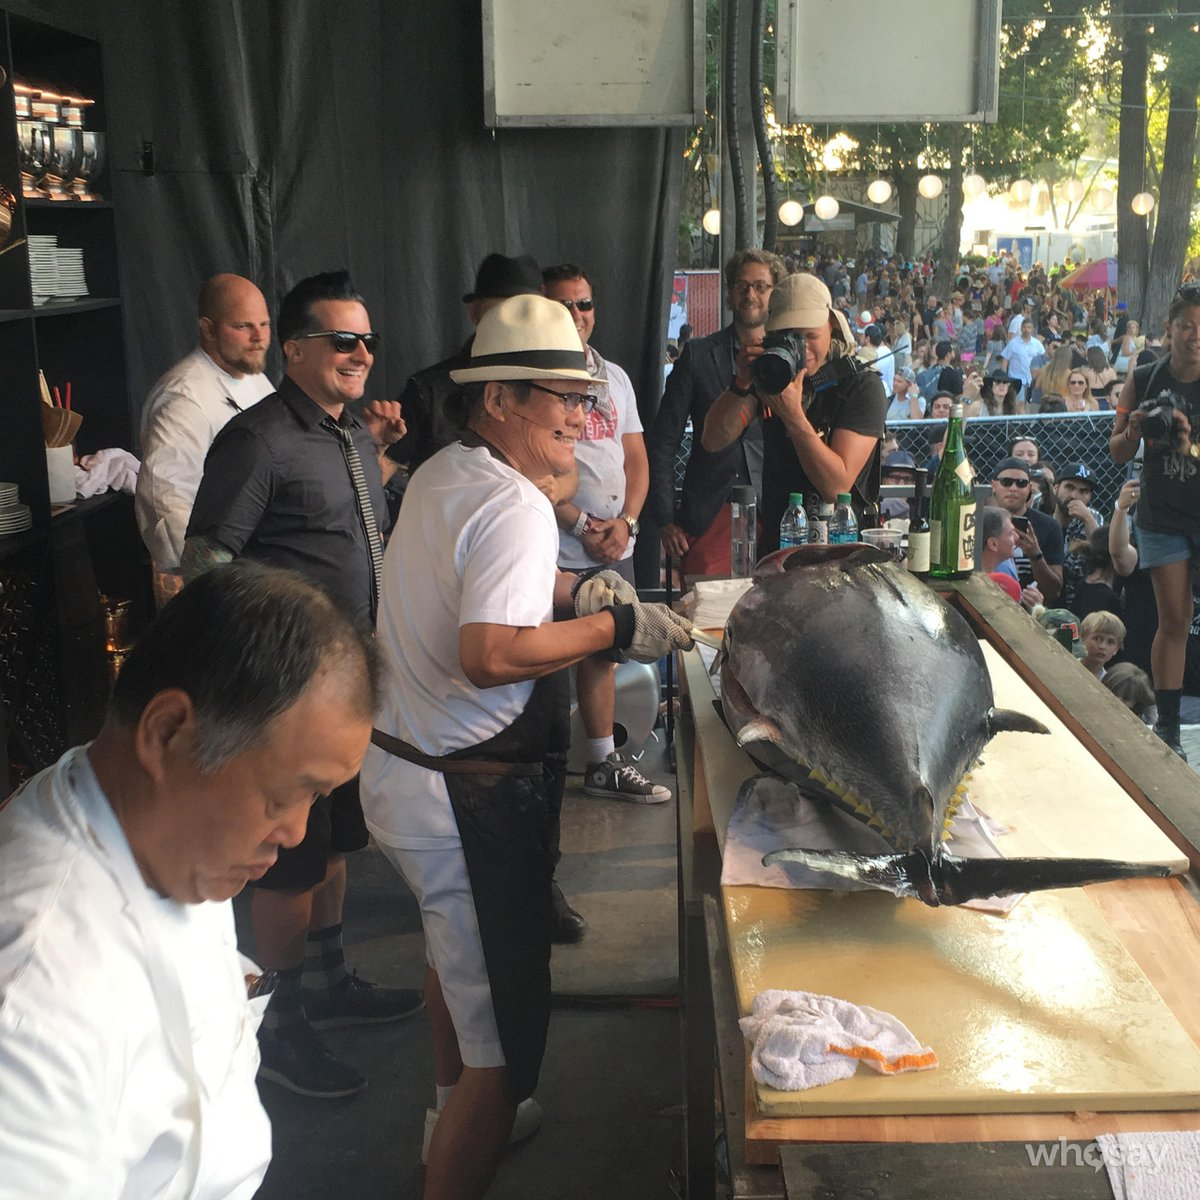 My good friend @chef_morimoto breaking down a whole tuna with green day